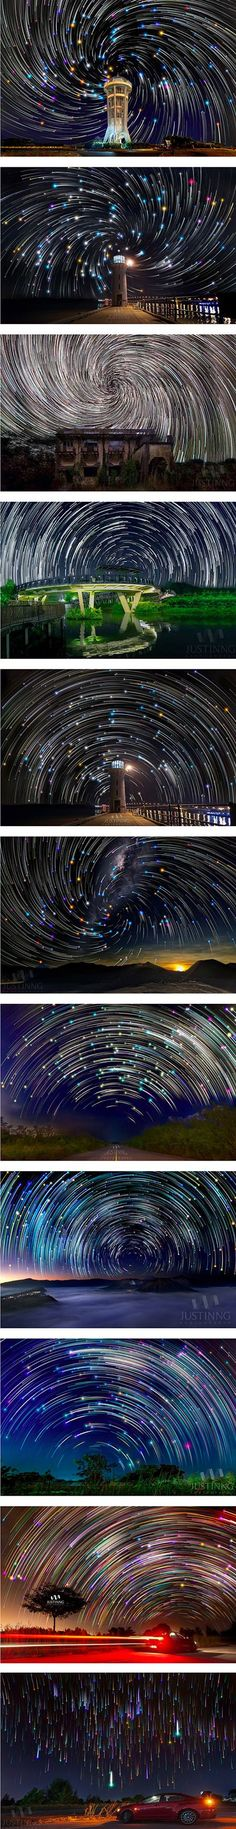 http://www.techeblog.com/index.php/tech-gadget/the-star-filled-night-sky-becomes-a-magical-sight-when-combined-with-this-camera-technique - http://www.trickphotographyandspecialeffects.us/star-trail-photography-tricks